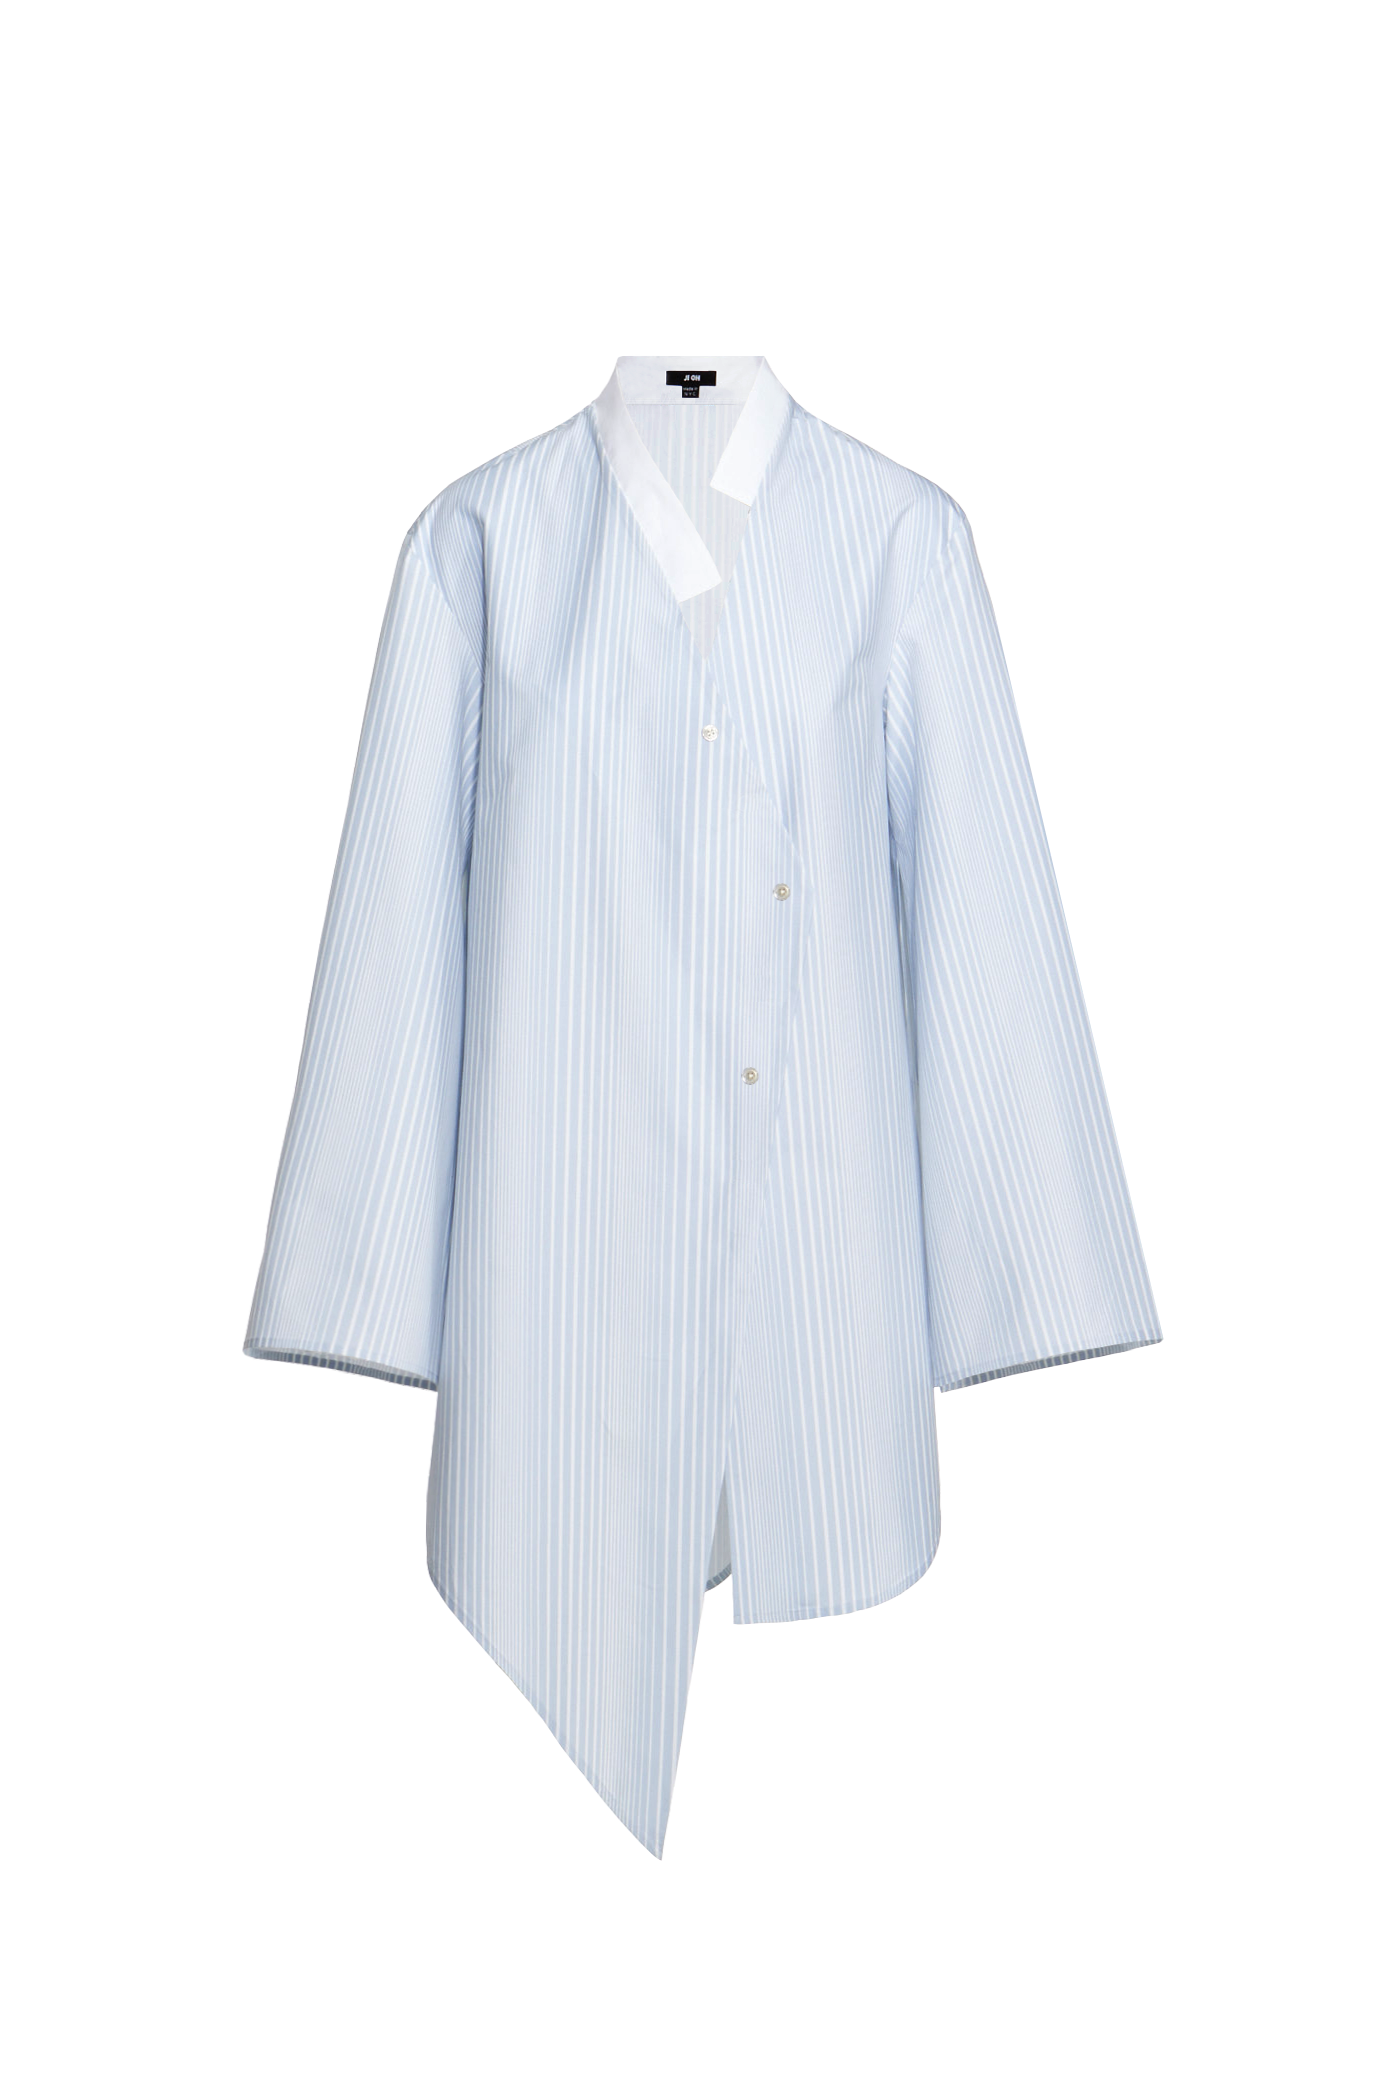 05e1a86aba9 Ji Oh Baby Blue And White Stripe Print Cotton Diagonal Front Closure Stand  Collar Button Down Shirt Dress Angled Asymmetrical Hem Long Bell Sleeves  With ...